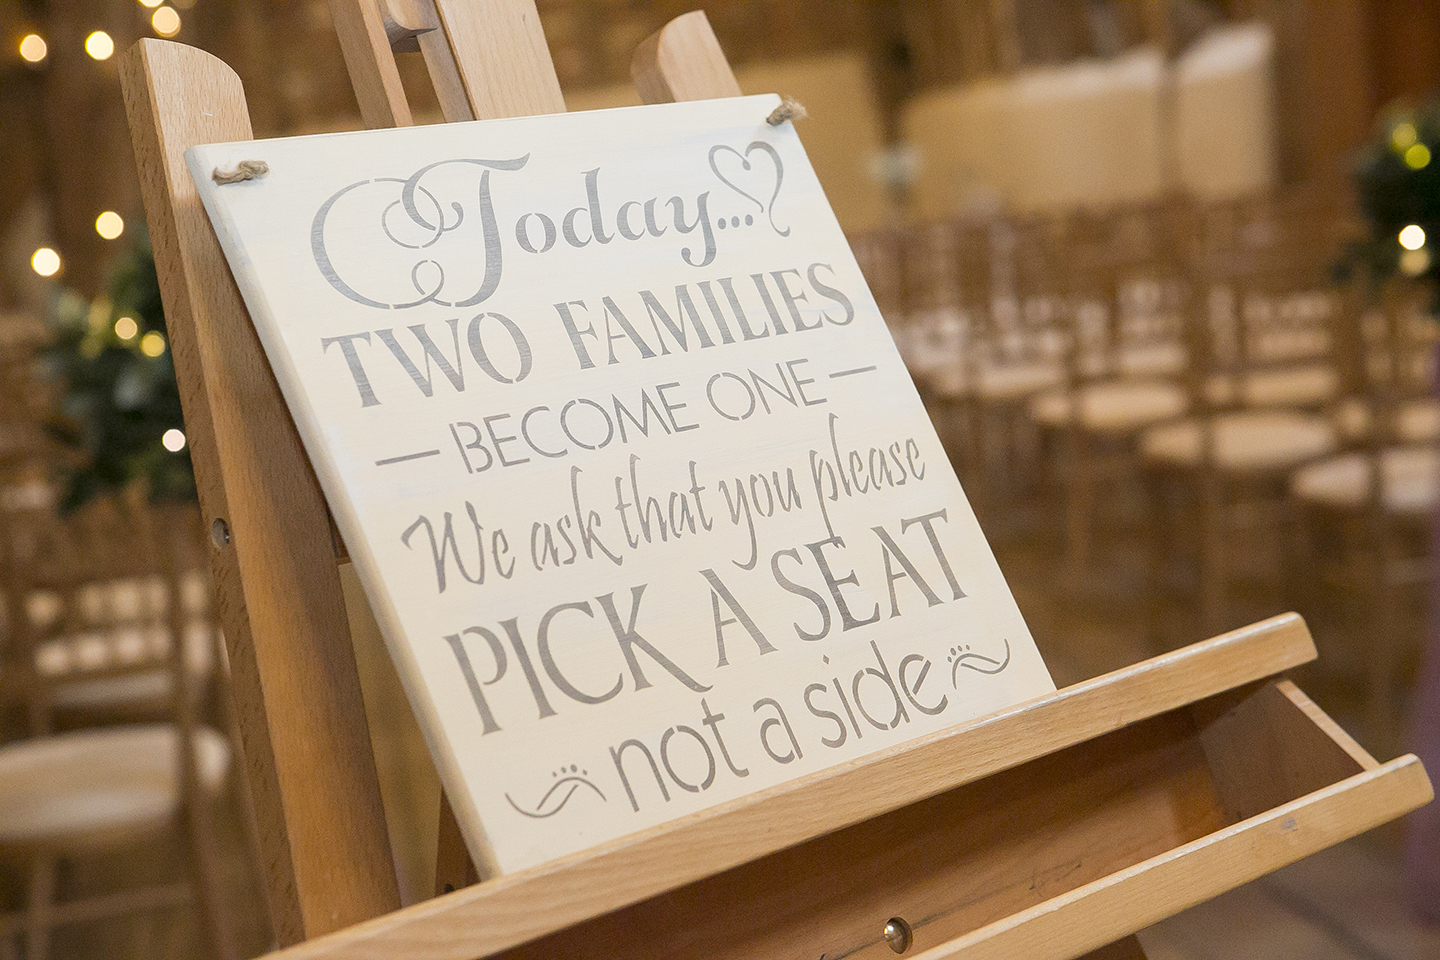 The bride used a wedding sign to encourage the two families to sit together during the wedding ceremony